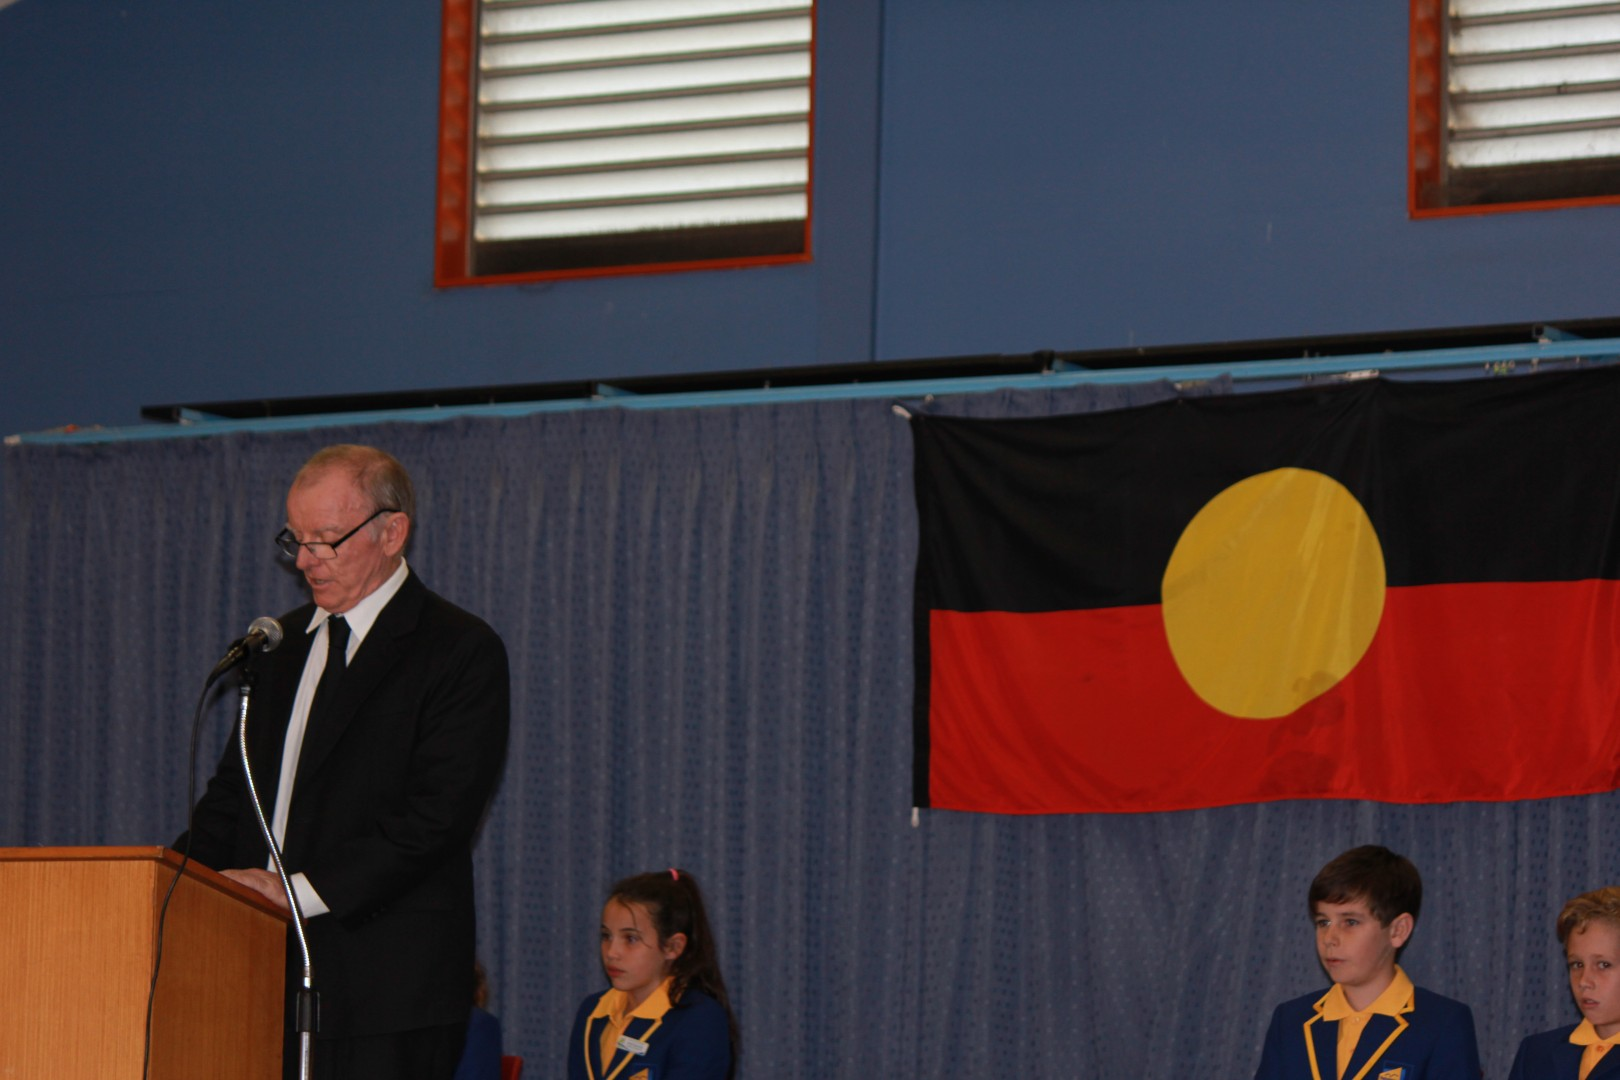 Batemans Bay Public School Principal Mr Tom Purcell addresses the assembly.